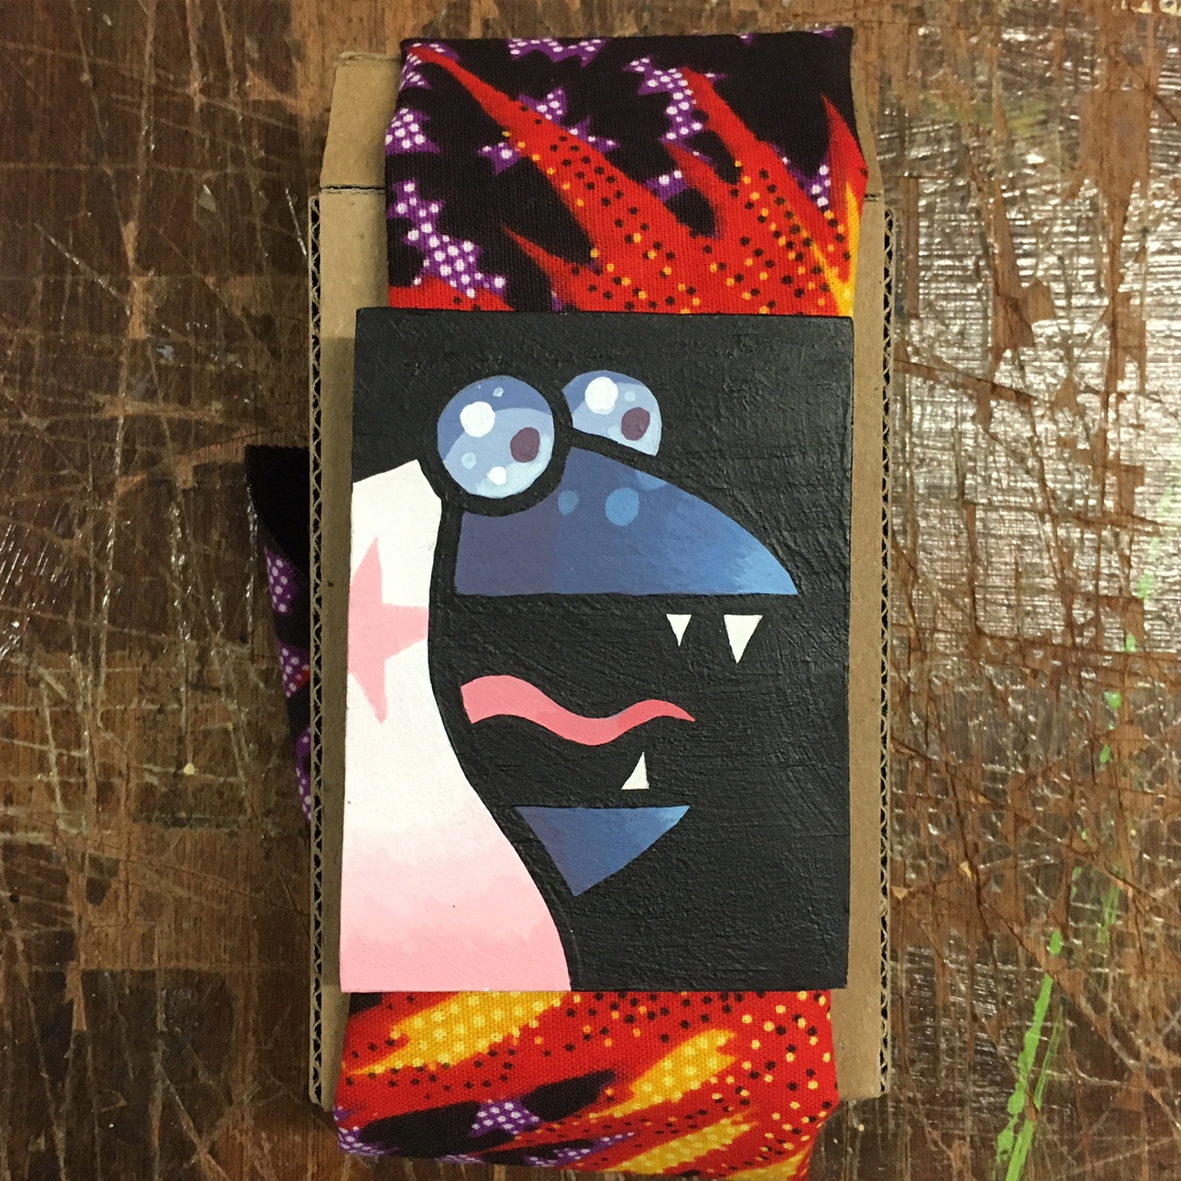 Left Guy small painting